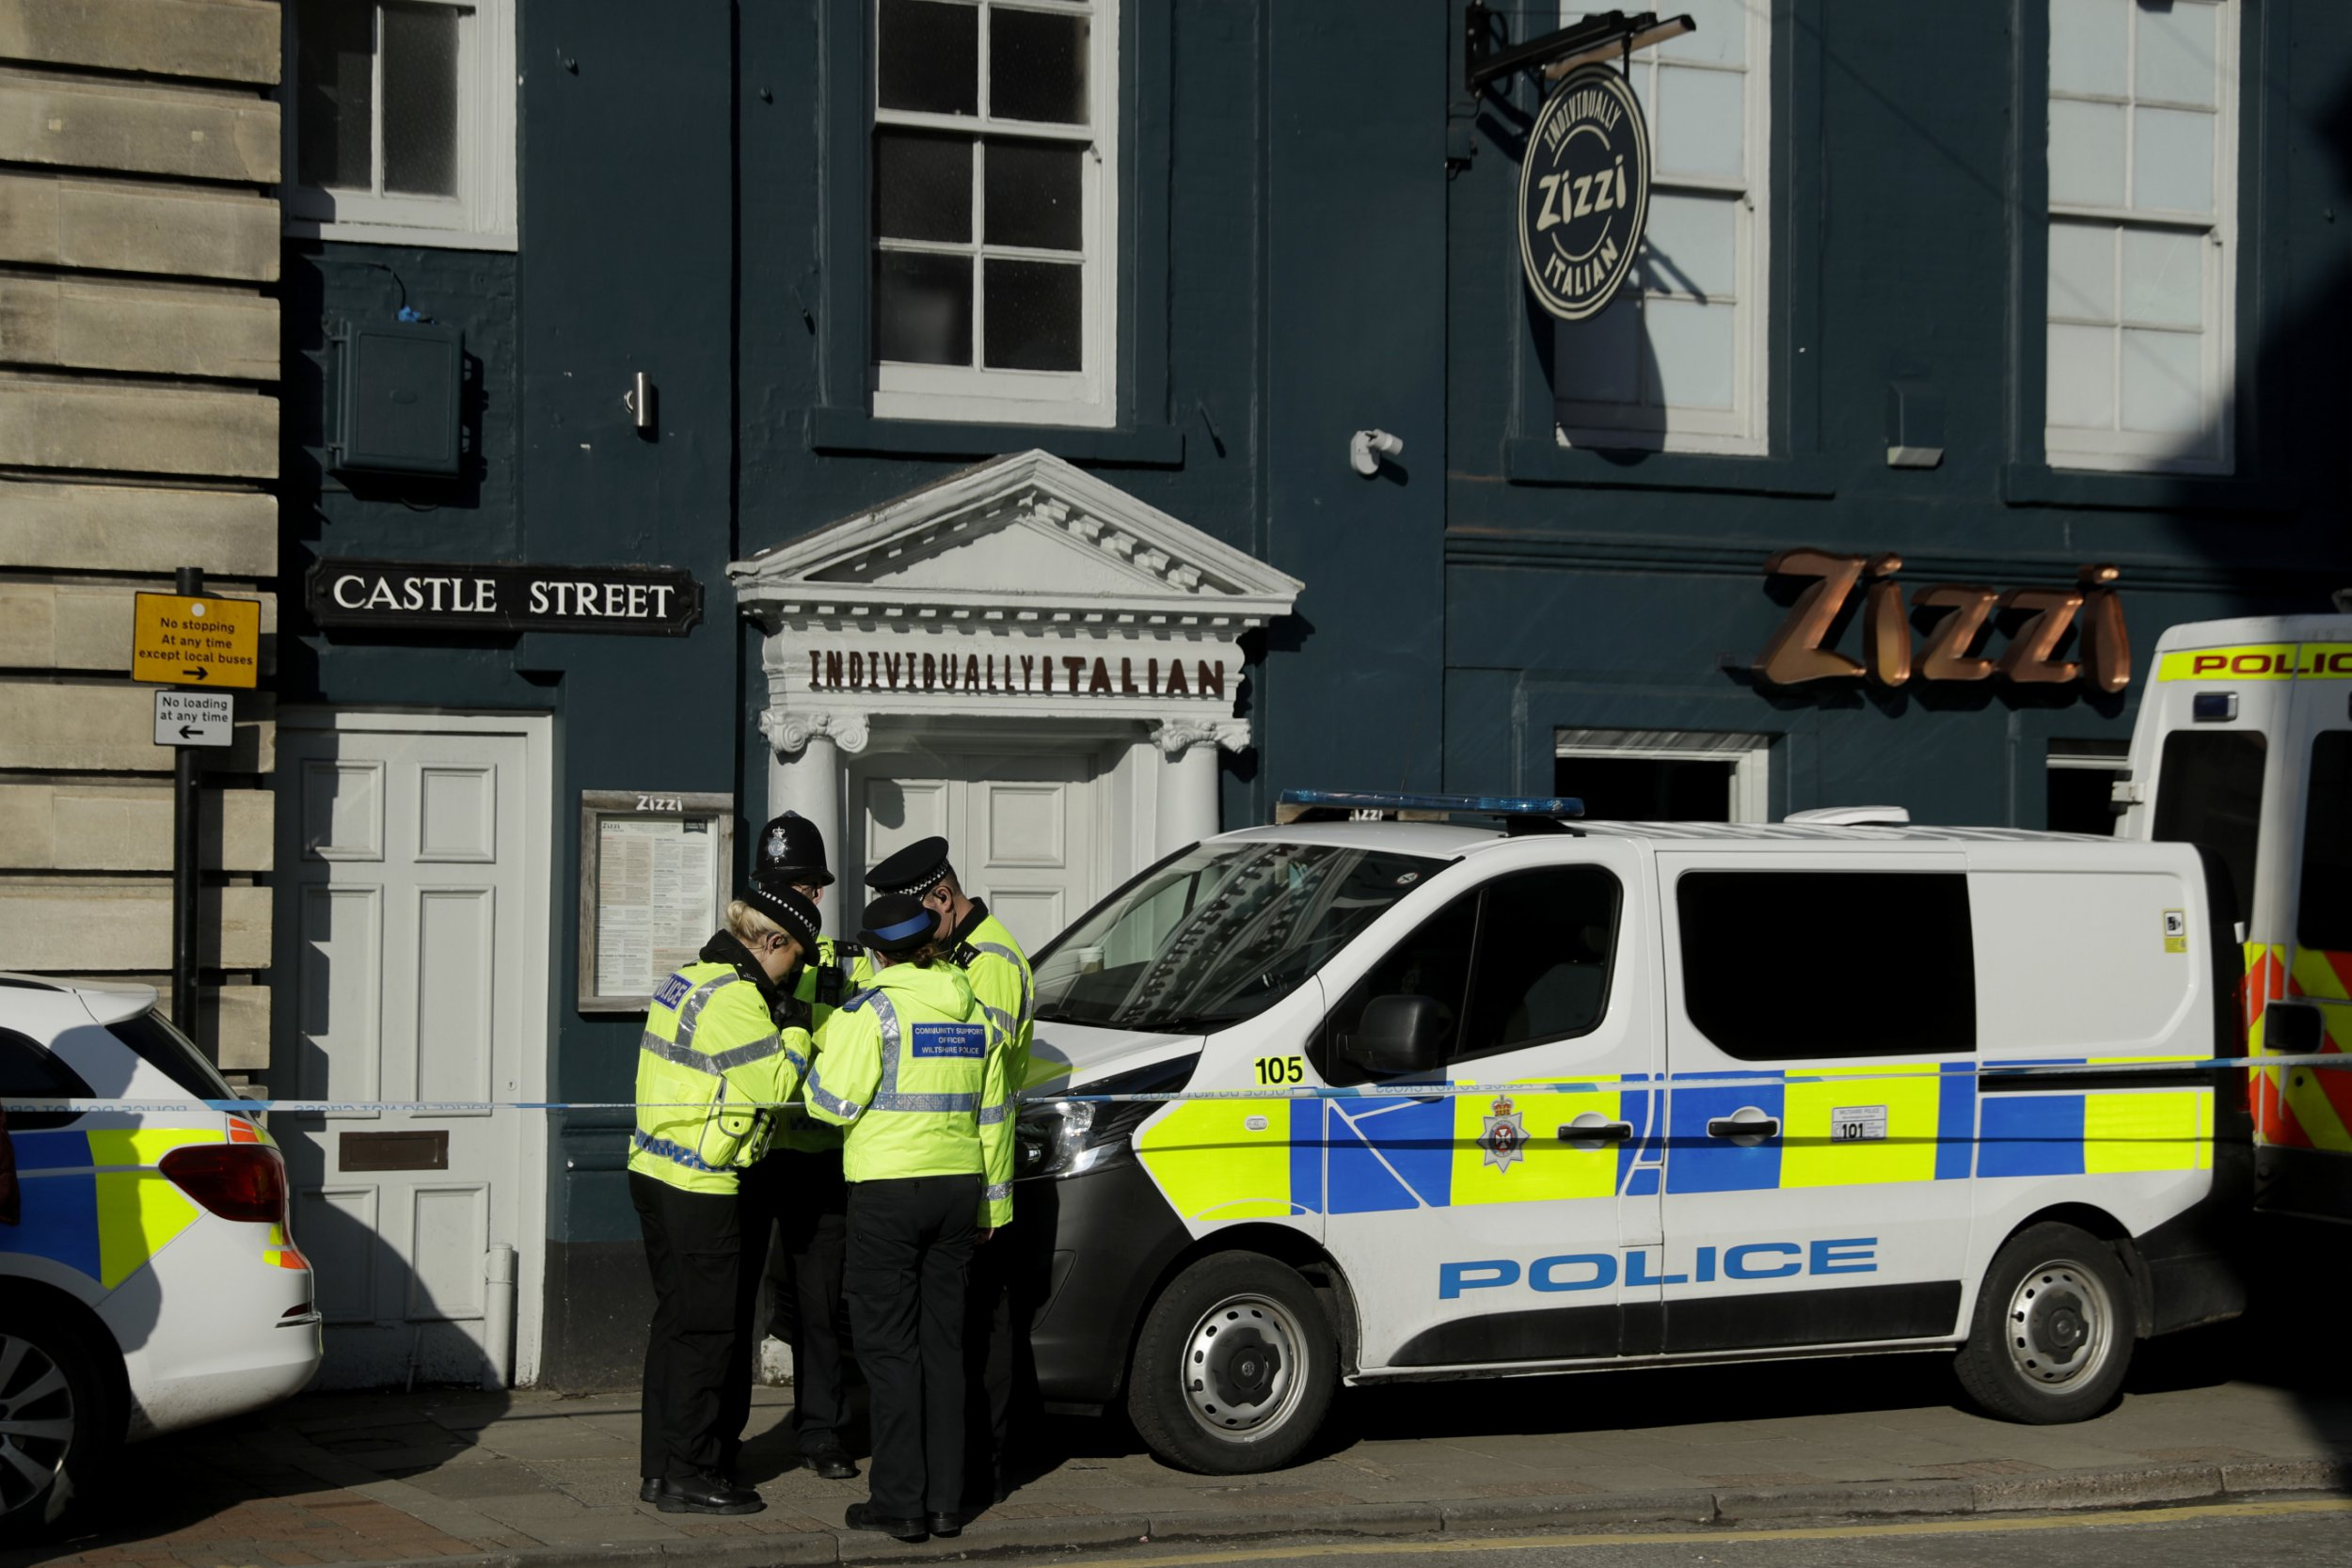 "Police officers stand outside a Zizzi restaurant in Salisbury, England, Wednesday, March 7, 2018, near to where former Russian double agent Sergei Skripal was found critically ill. Britain's counterterrorism police took over an investigation Tuesday into the mysterious collapse of the former spy and his daughter, now fighting for their lives. The government pledged a ""robust"" response if suspicions of Russian state involvement are proven. Sergei Skripal and his daughter are in a critical condition after collapsing in the English city of Salisbury on Sunday. (AP Photo/Matt Dunham)"